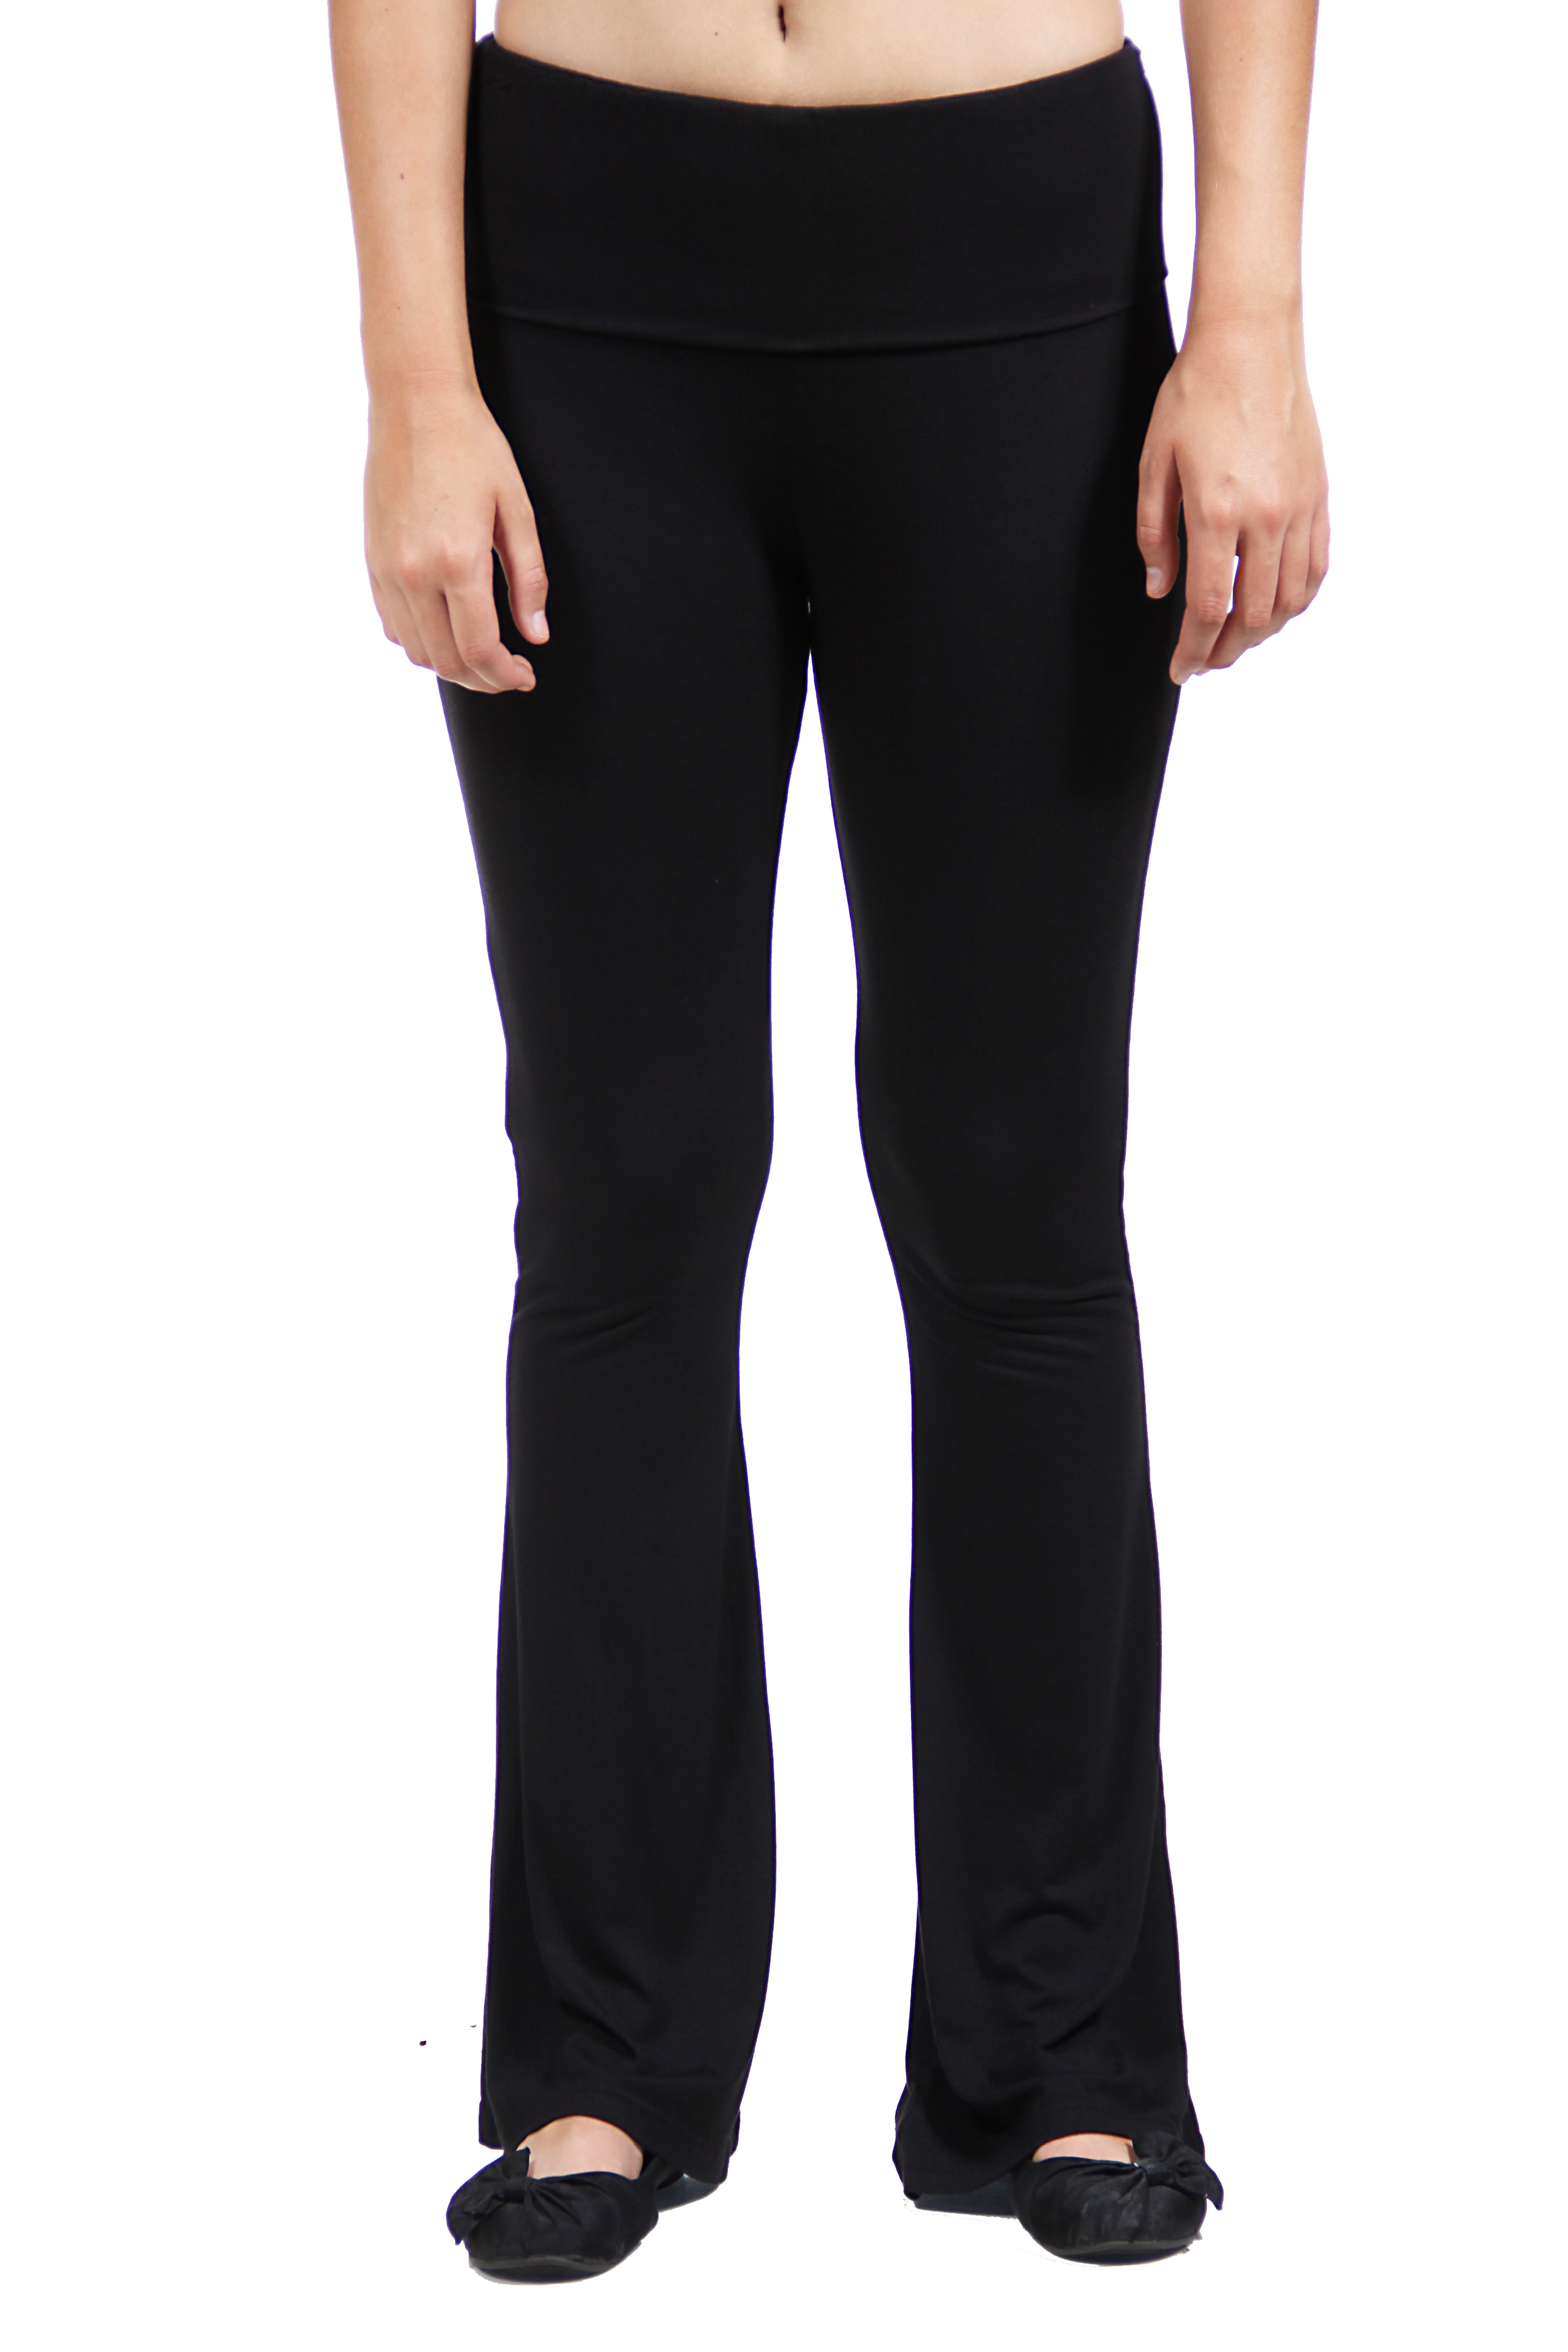 Twenty Four Seven Apparel Women's Straight Leg Pant